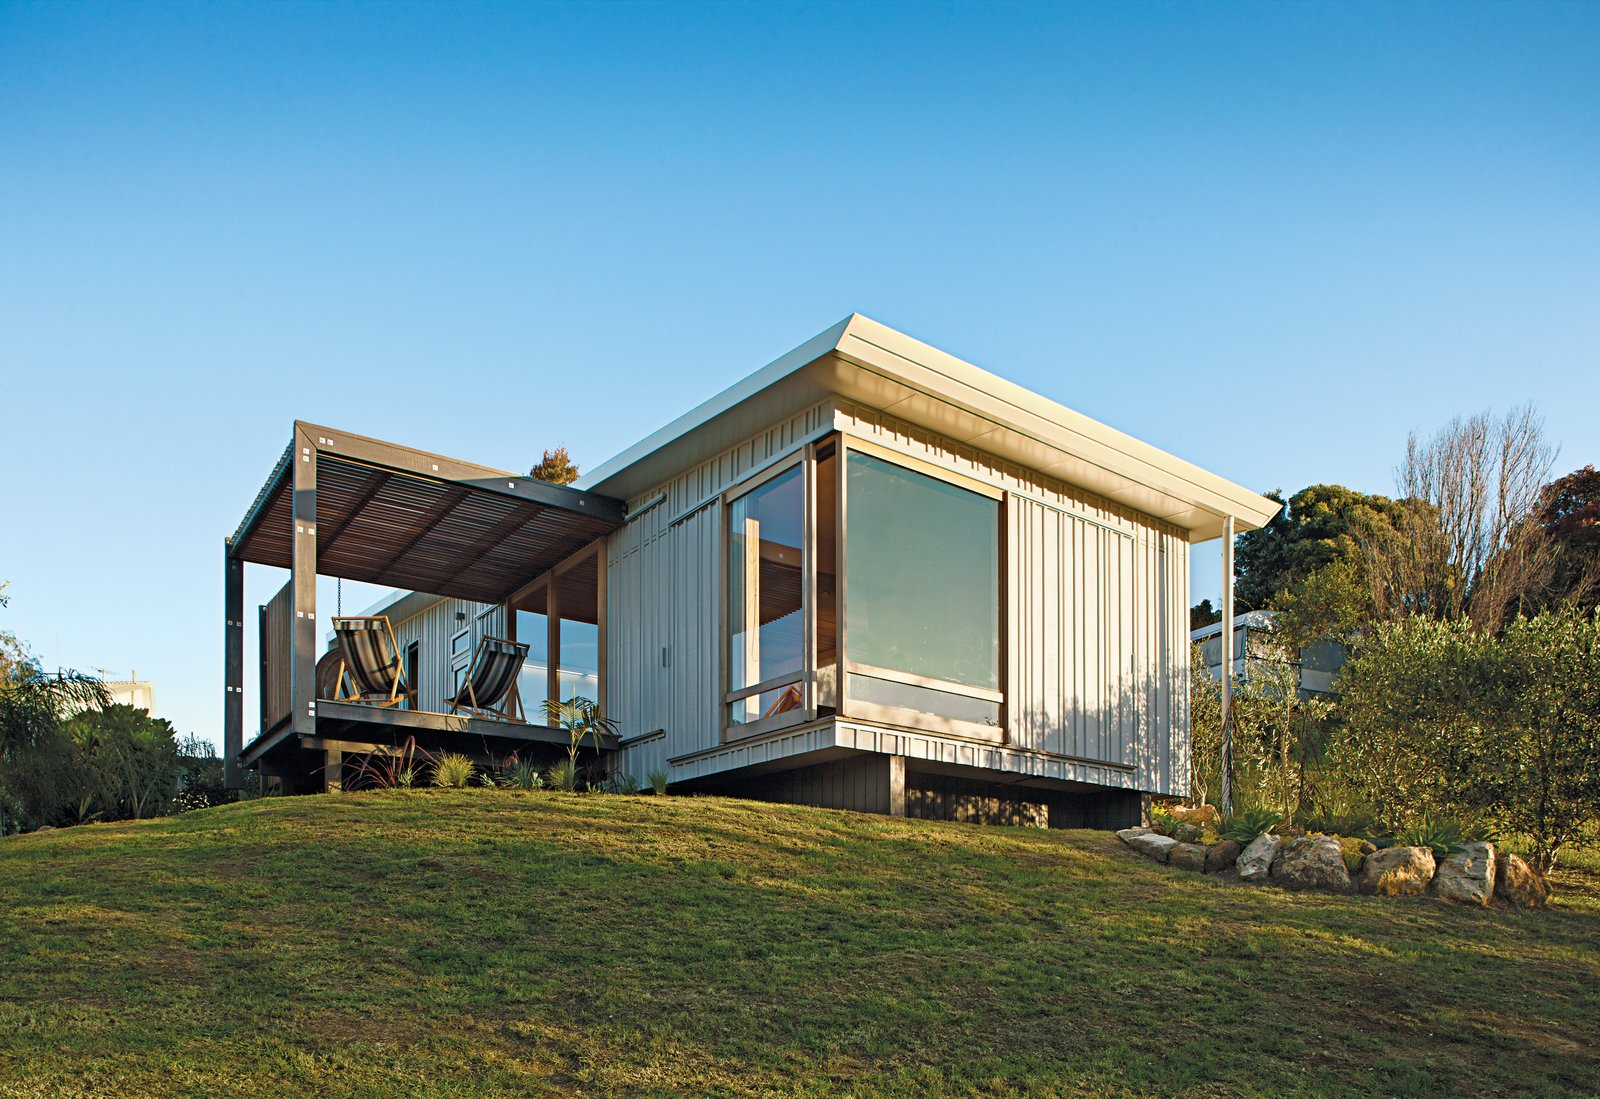 10 Coastal Prefabs That Bring Modular Housing to the Beach